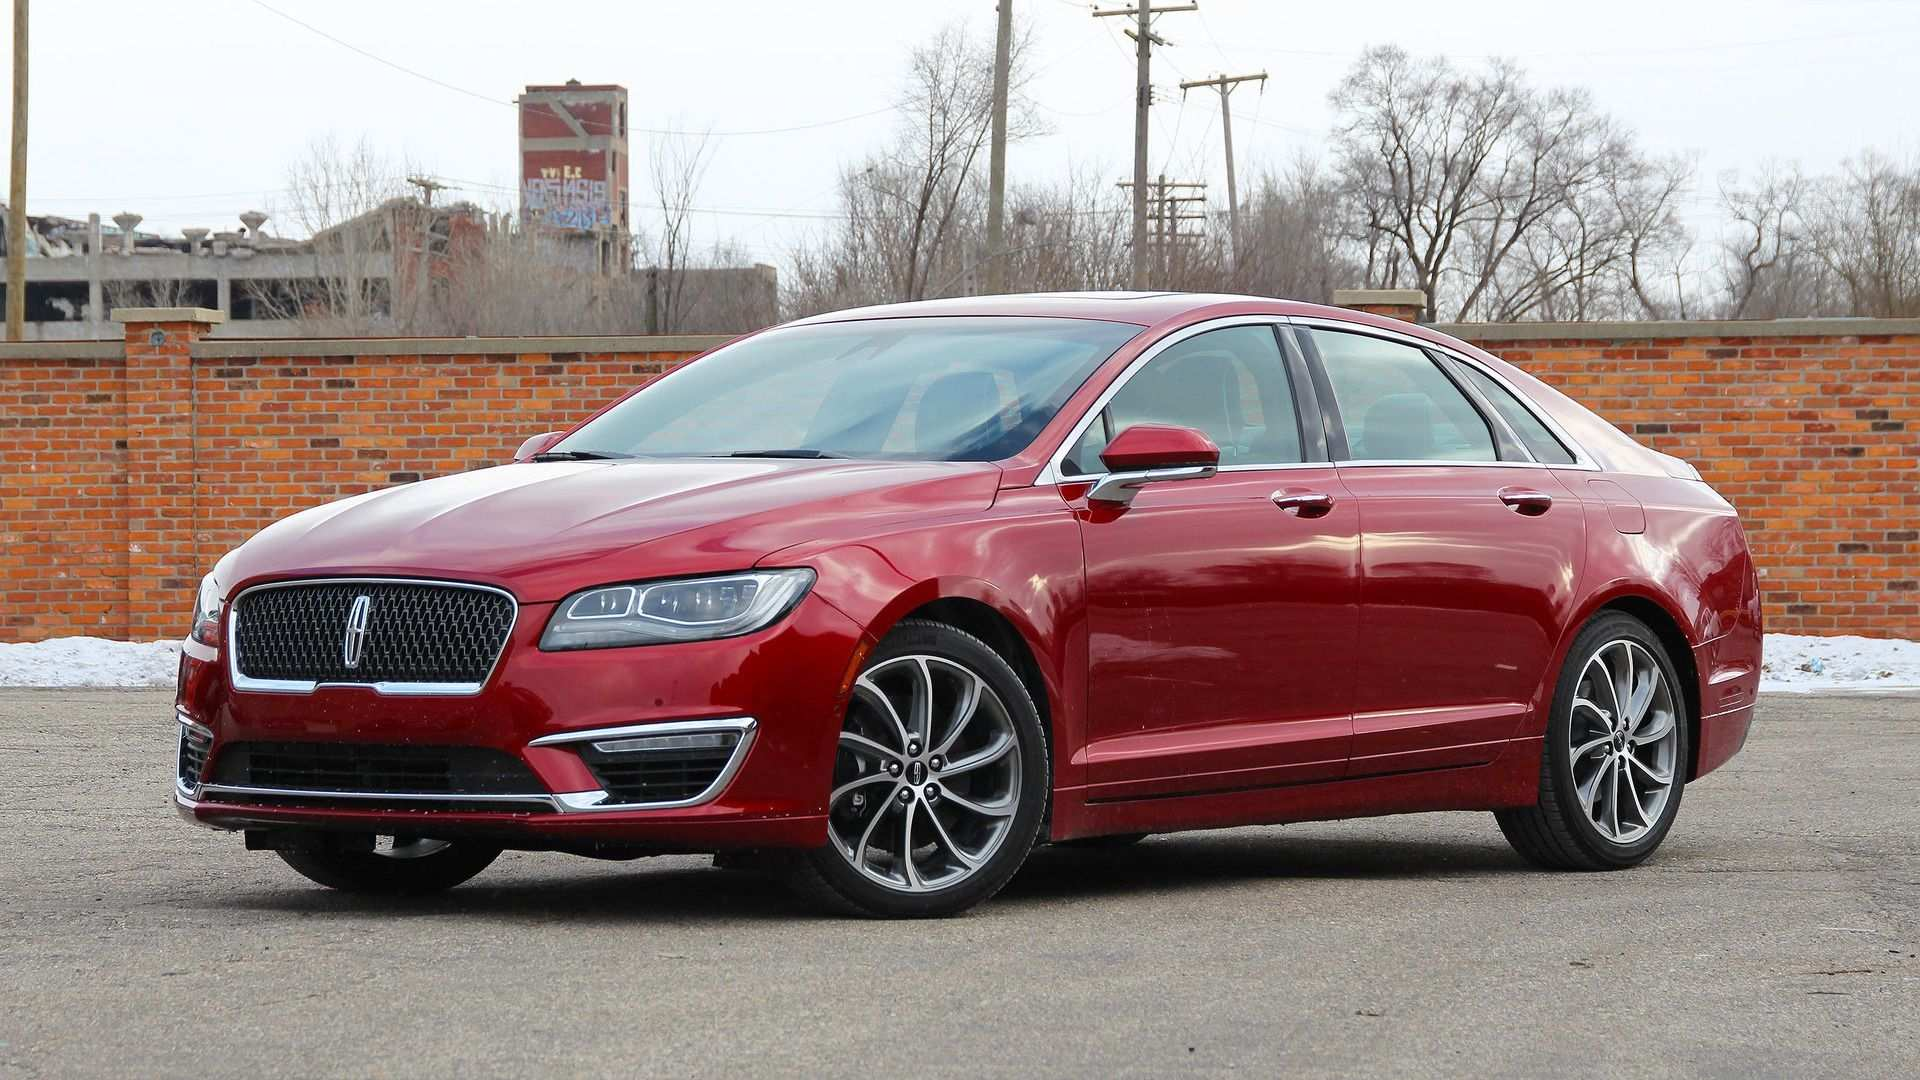 51 All New 2019 Spy Shots Lincoln Mkz Sedan Redesign And Review